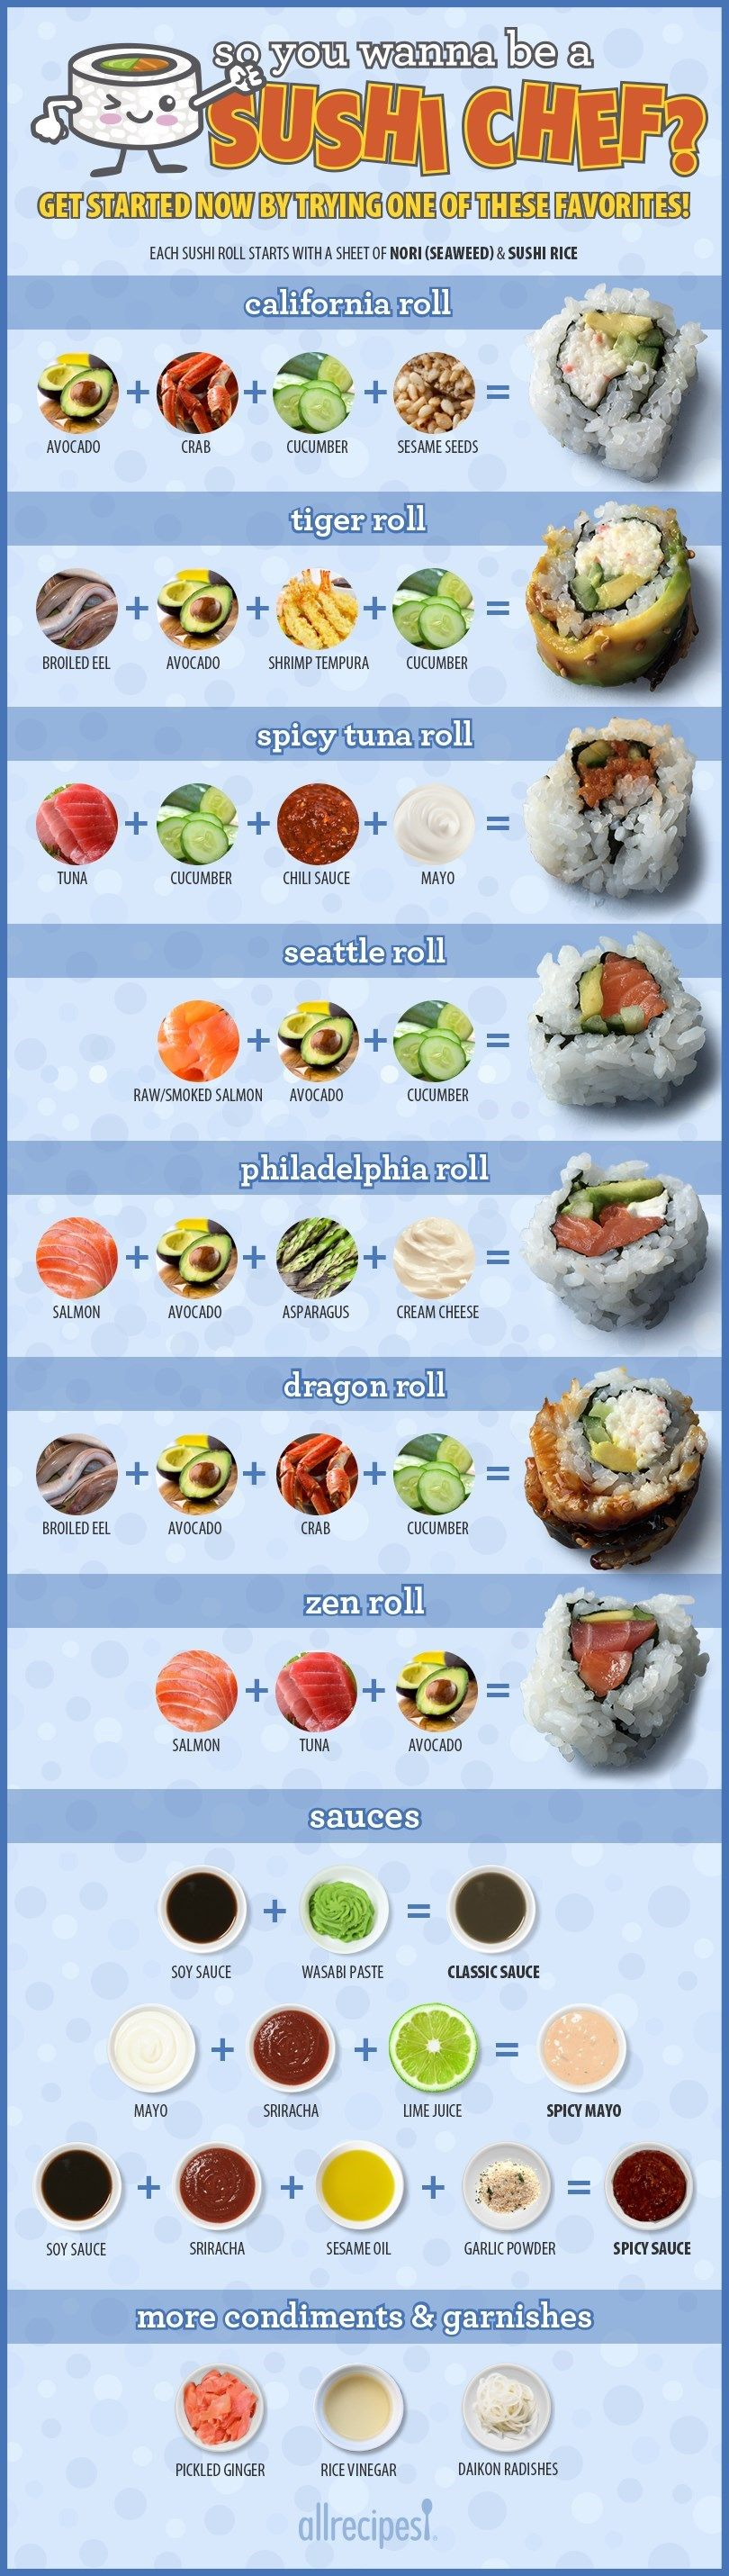 Watch The health snob's guide to raw fish video